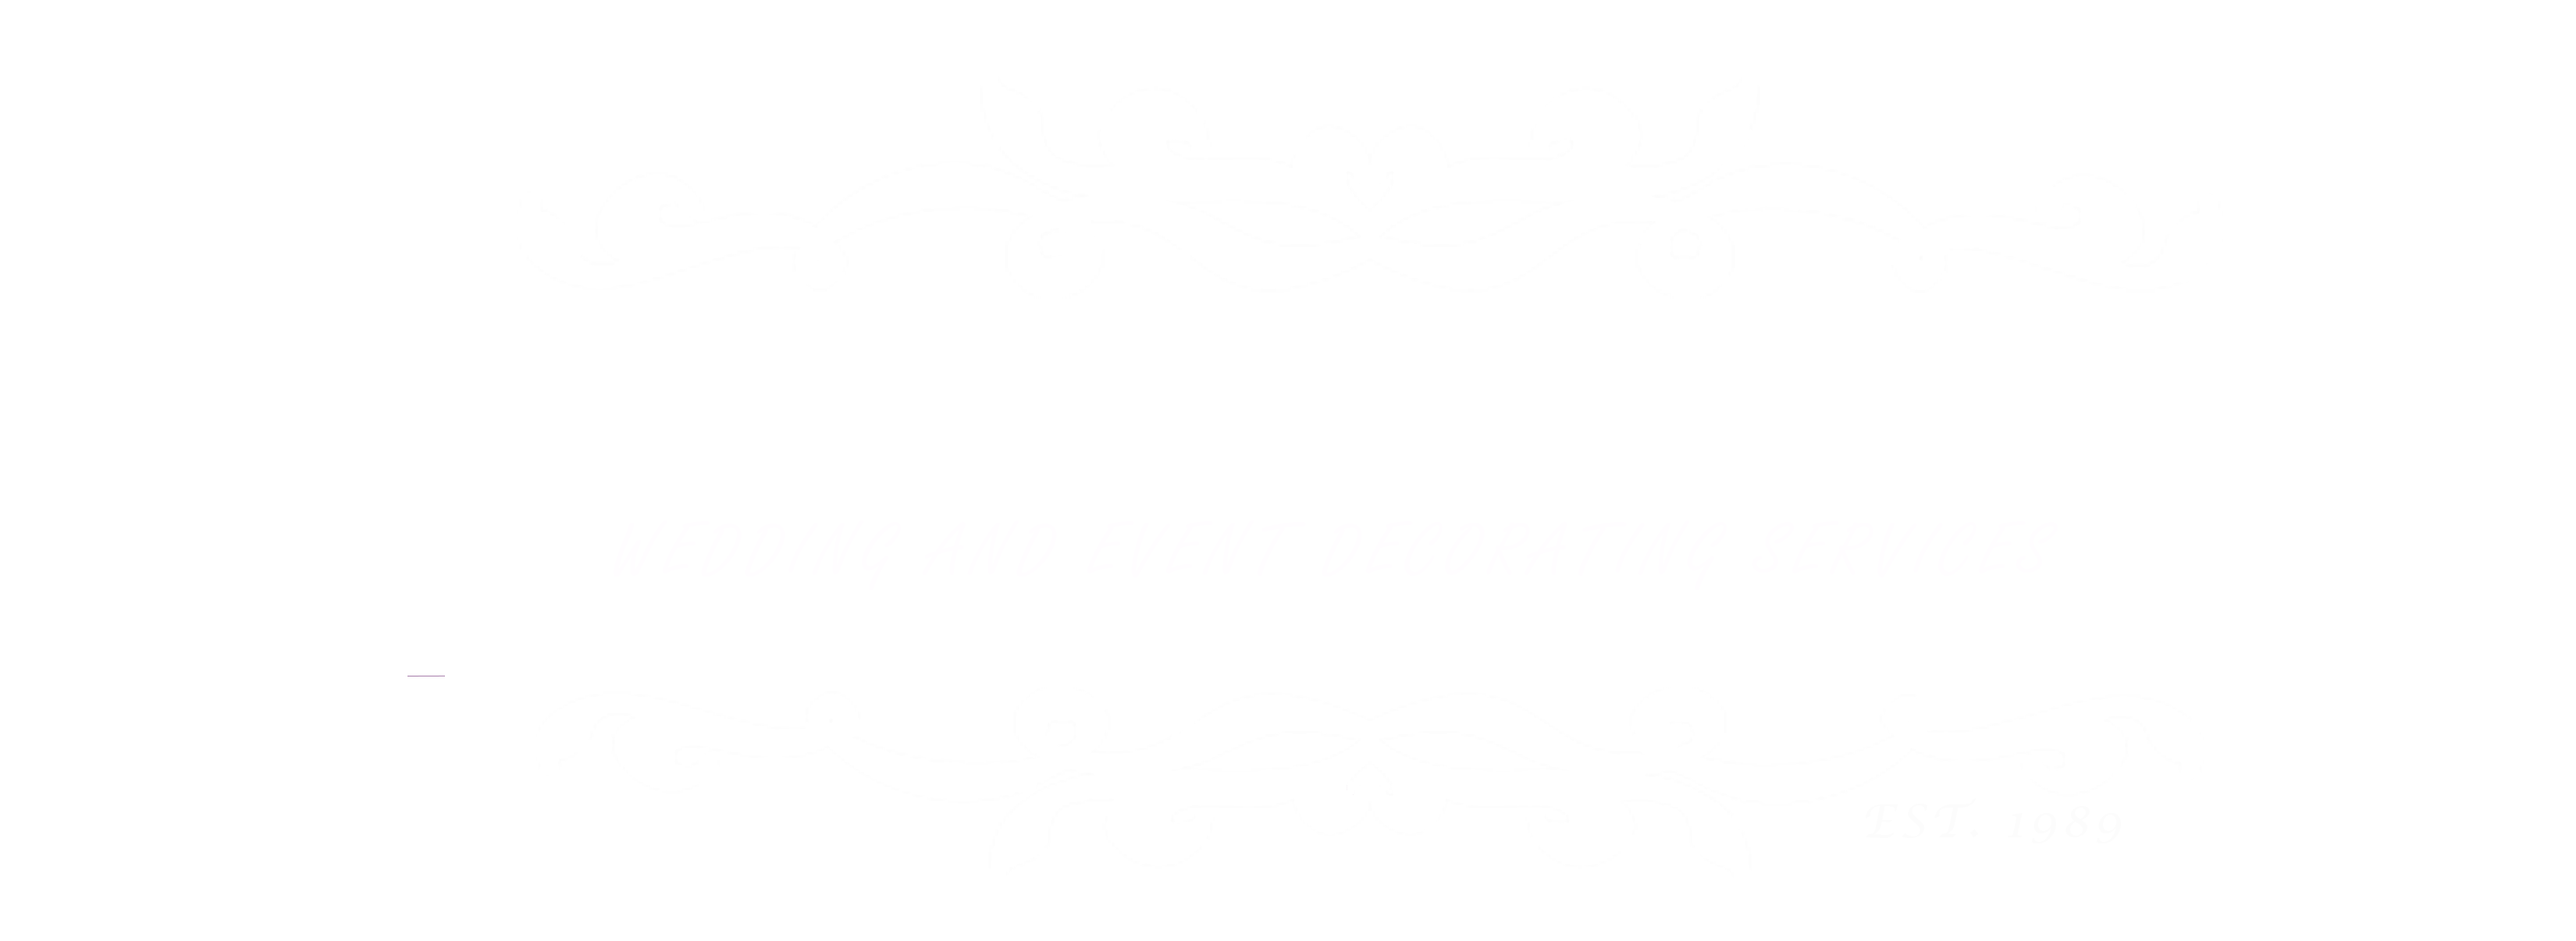 Northern Occasions Home